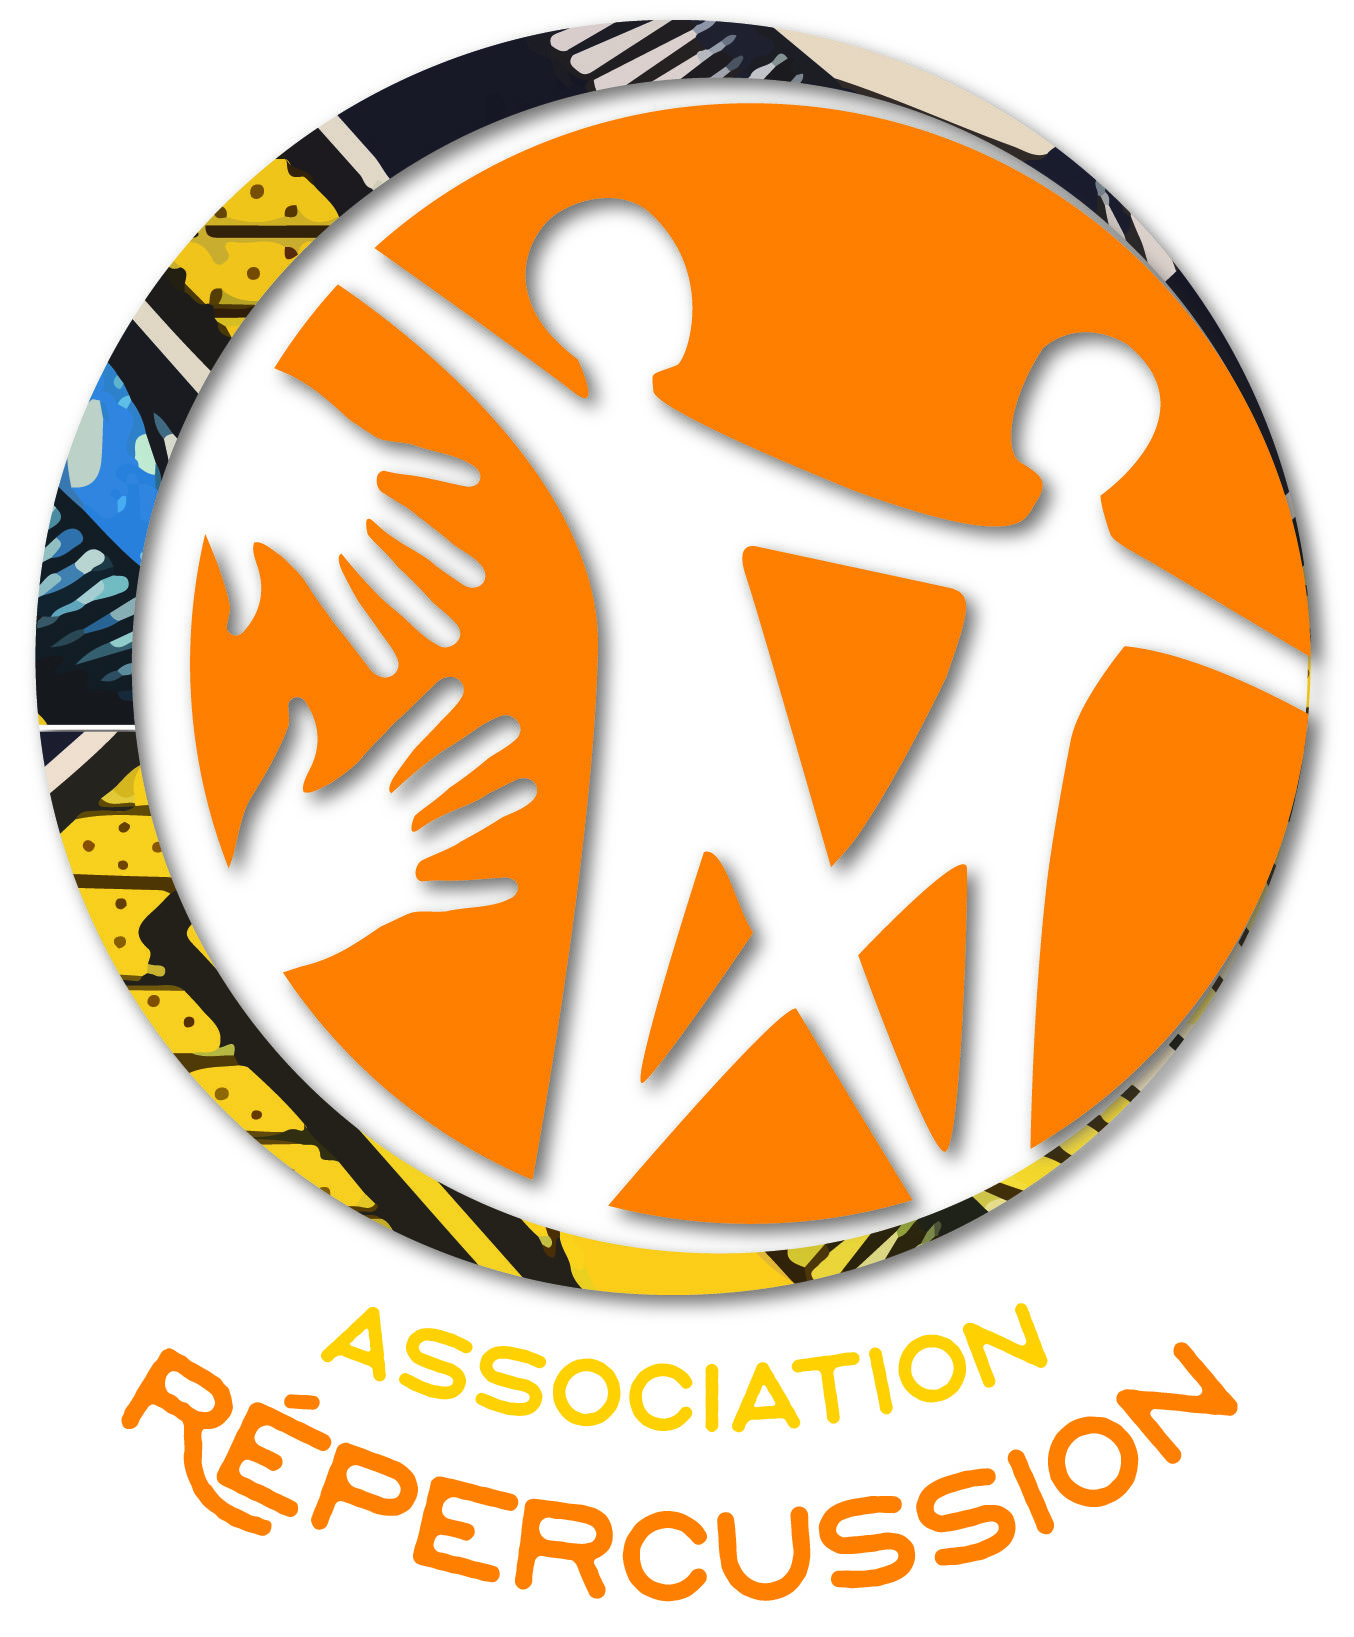 Association Répercussion